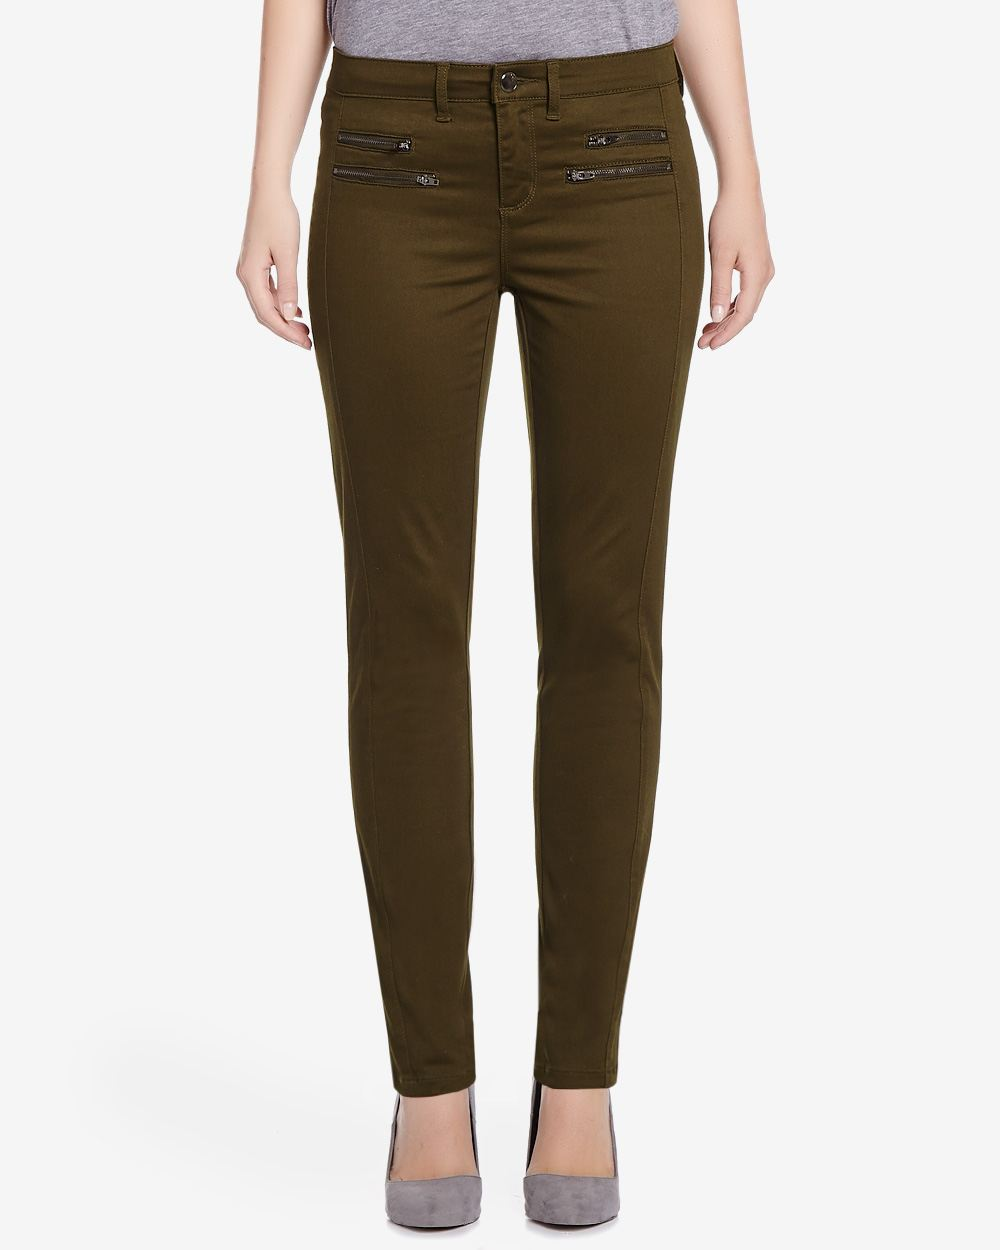 Buy NYDJ Women's Petite Size Ami Super Skinny Jeans: Shop top fashion brands Jeans at taradsod.tk FREE DELIVERY and Returns possible on eligible purchases/5(76).